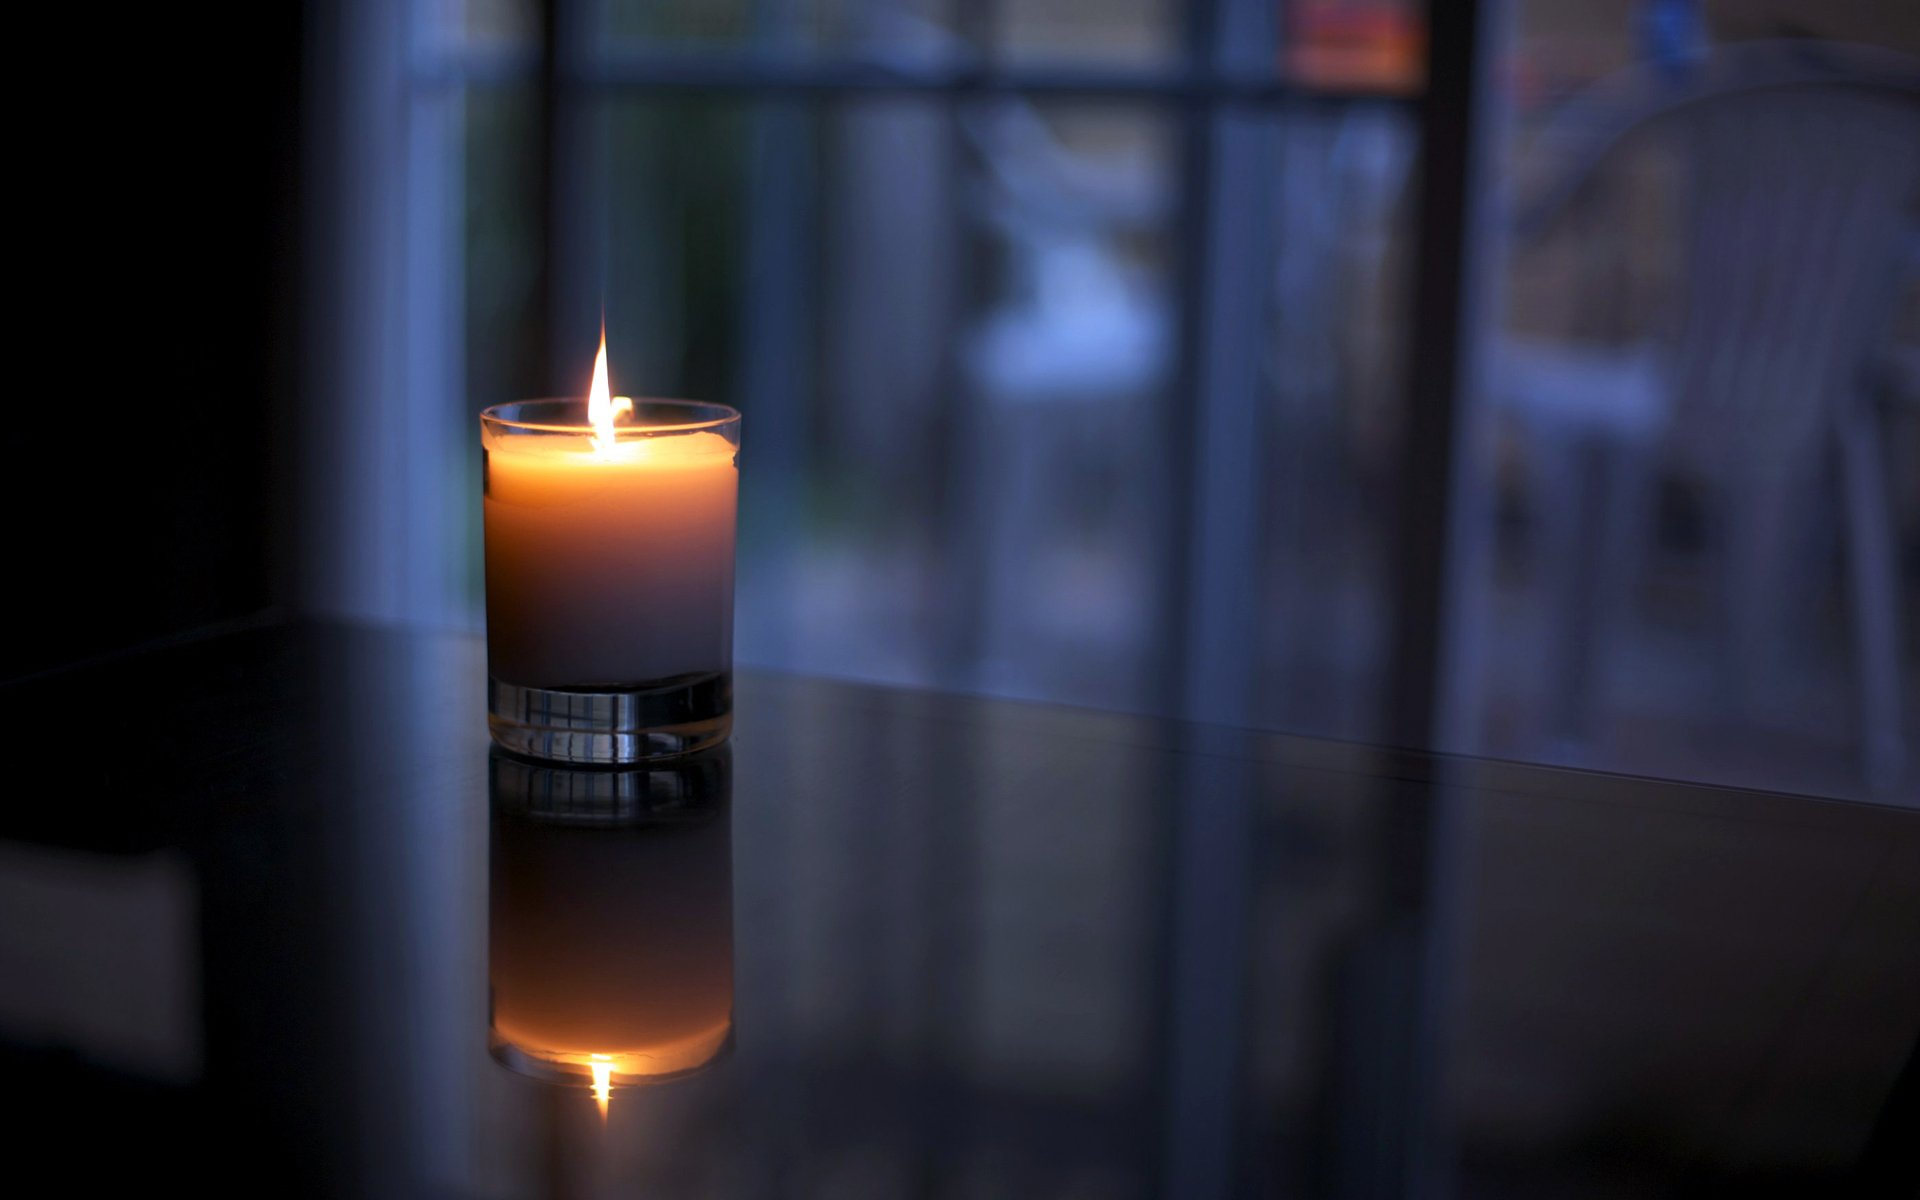 Candle Computer Wallpapers Desktop Backgrounds 1920x1200 ID 1920x1200